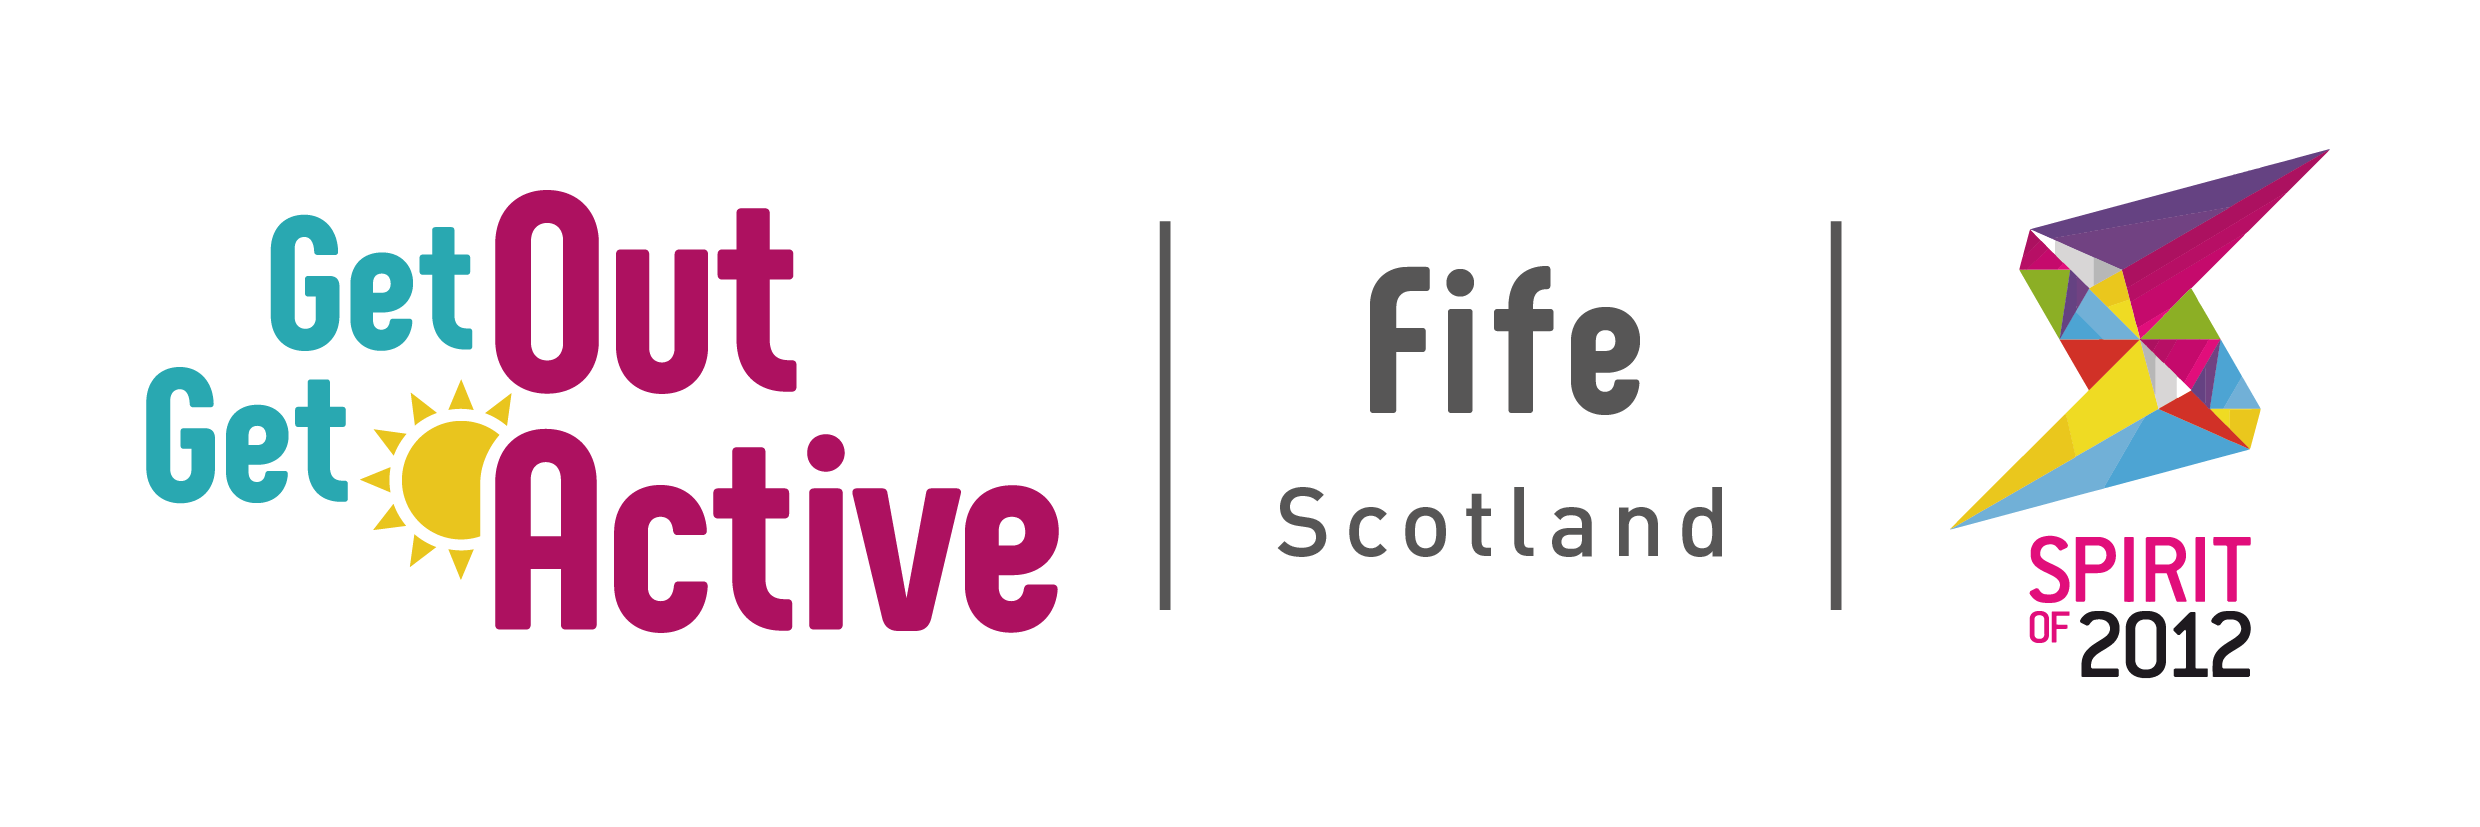 Get Out and Get Active Fife Scotland